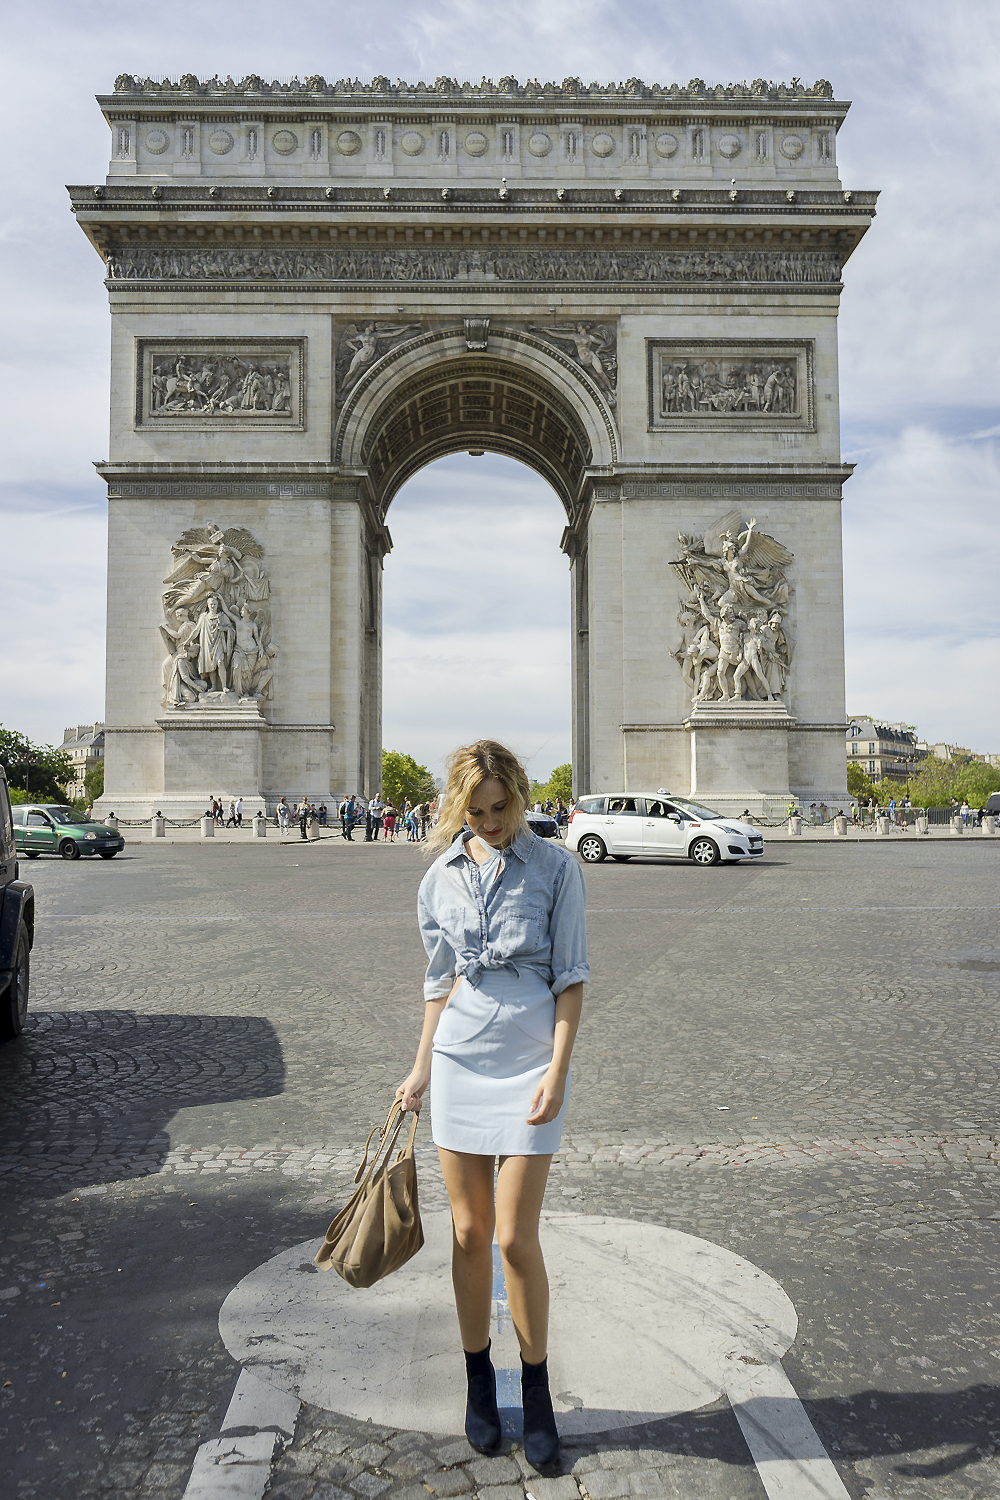 blue-dress-mini-denim-mango-shirt-hm-shoes-navy-boots-ootd-lookbook-look-outfit-blonde-tumblr-girl-paris-street-style-fashion